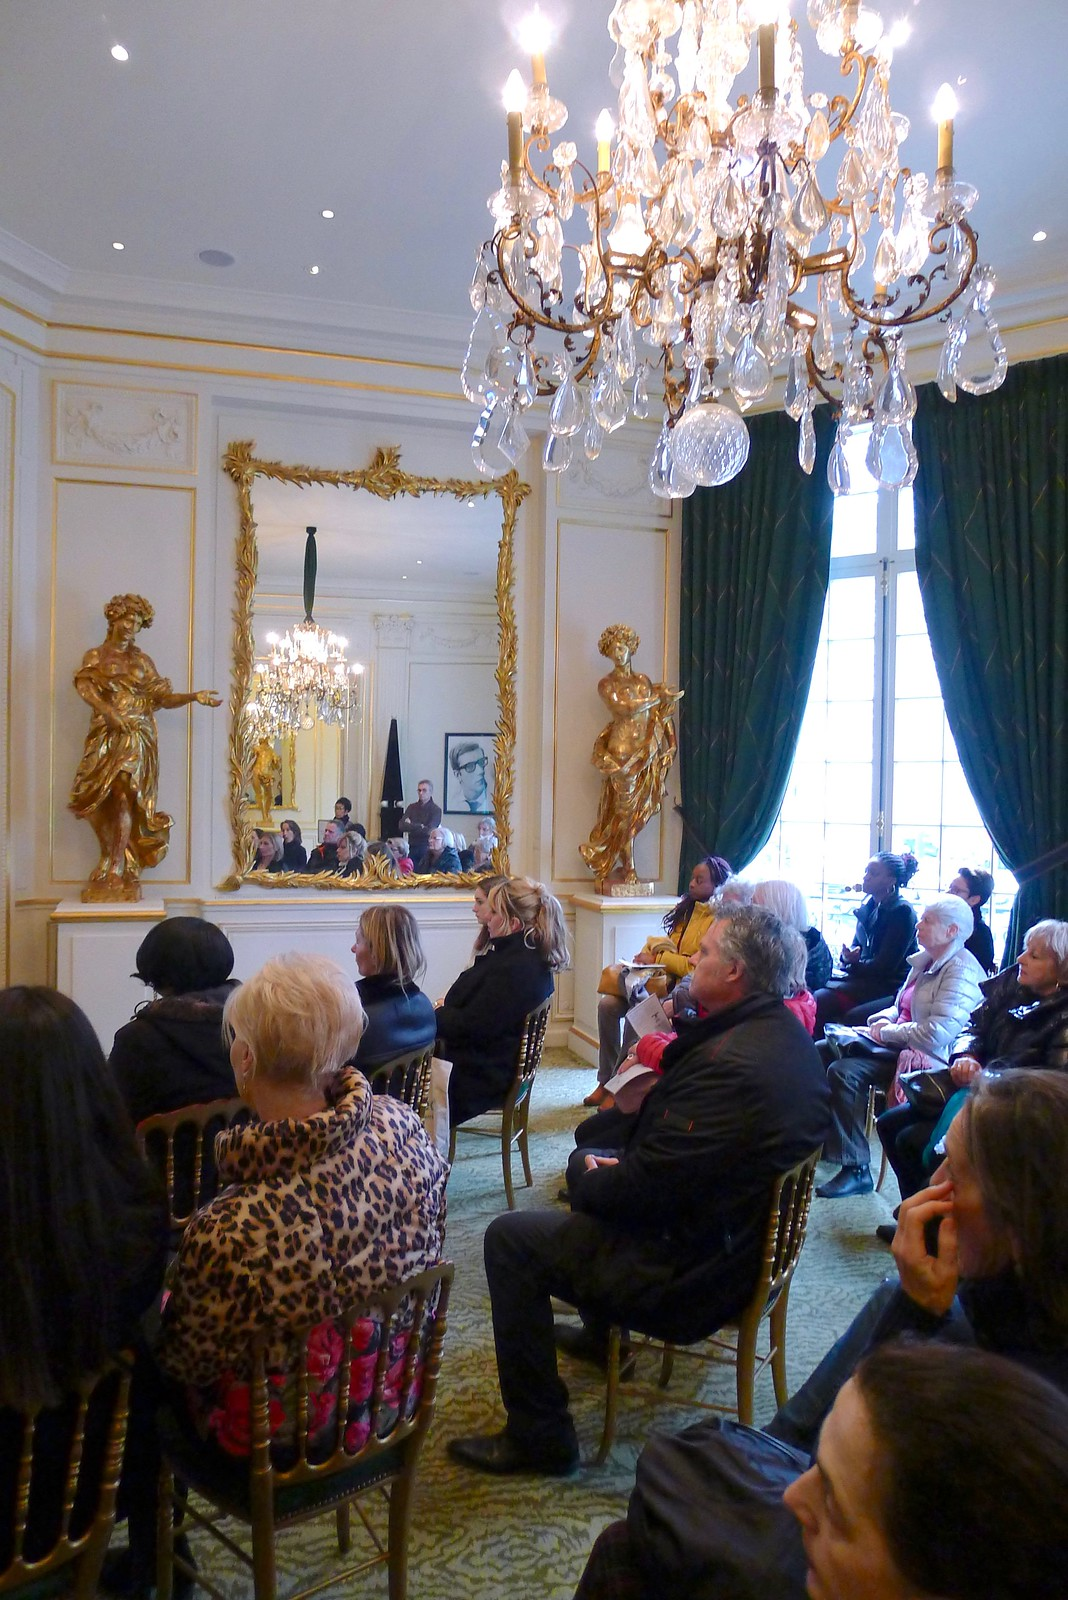 Yves Saint Laurent Museum, Paris